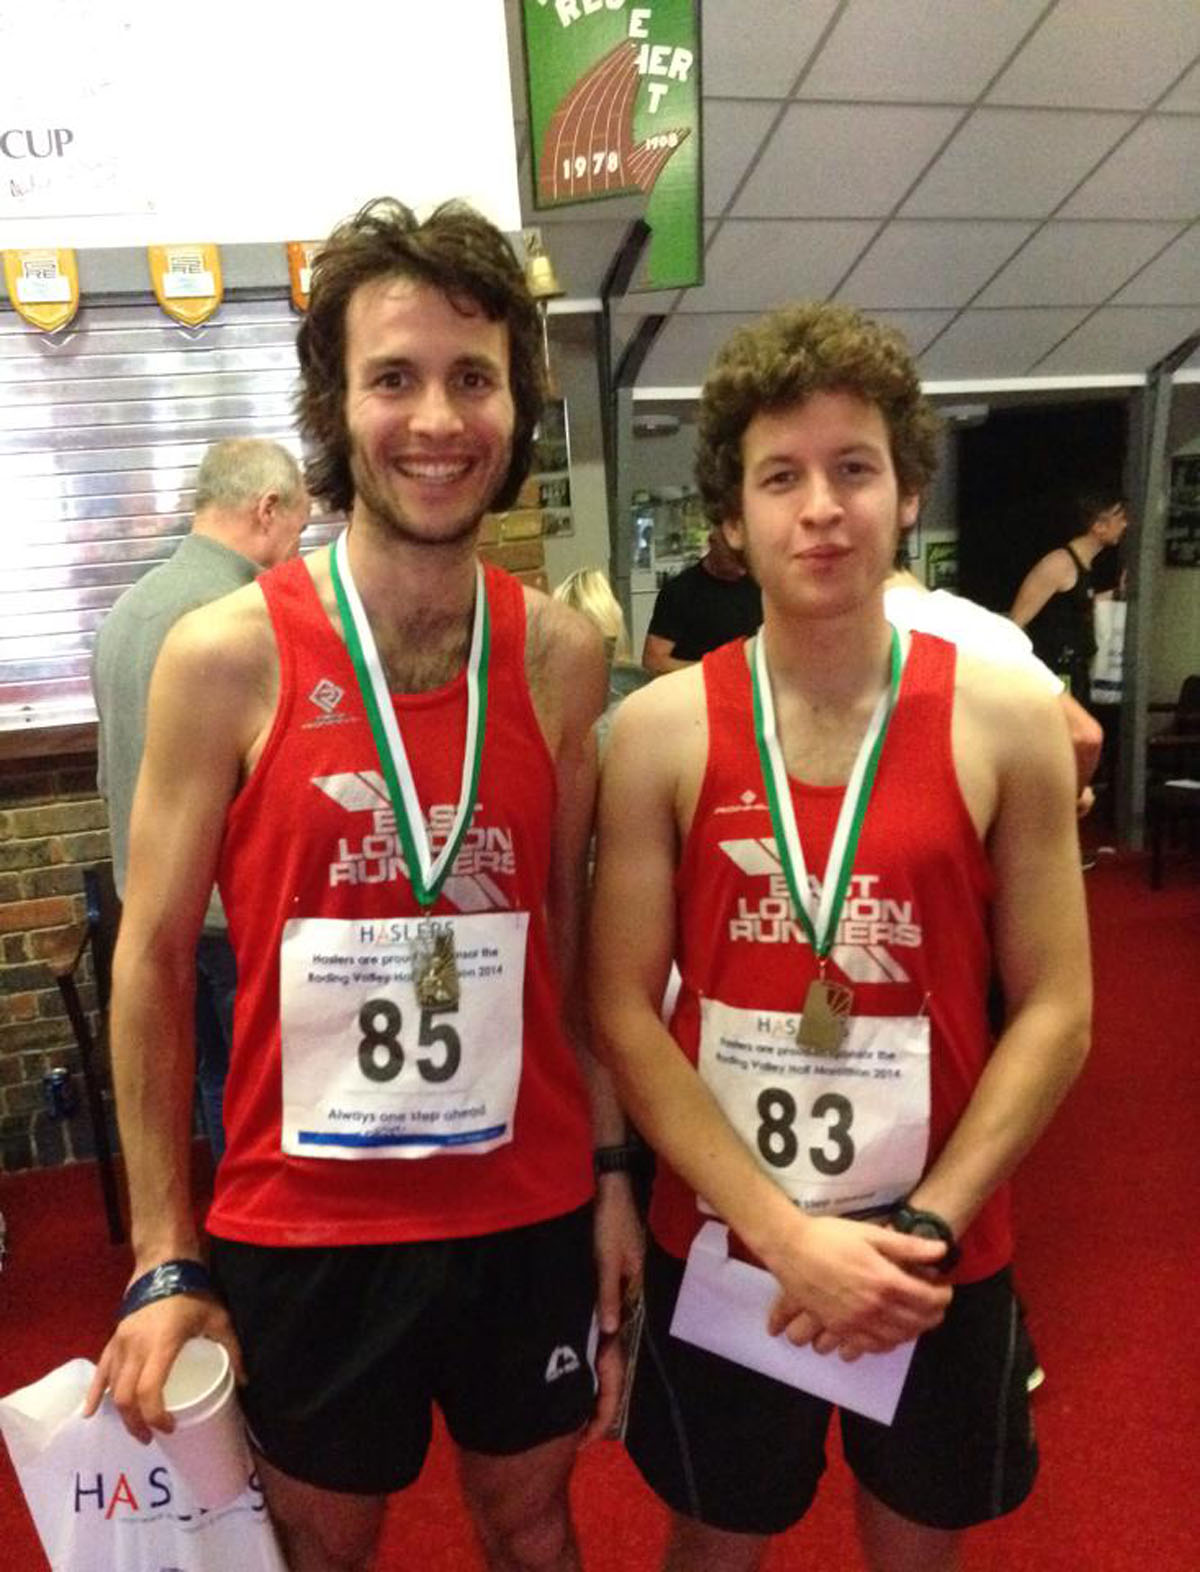 The Brown brothers (Patrick left, Euan right) both claimed top-1000 finishes in Sunday's London Marathon.